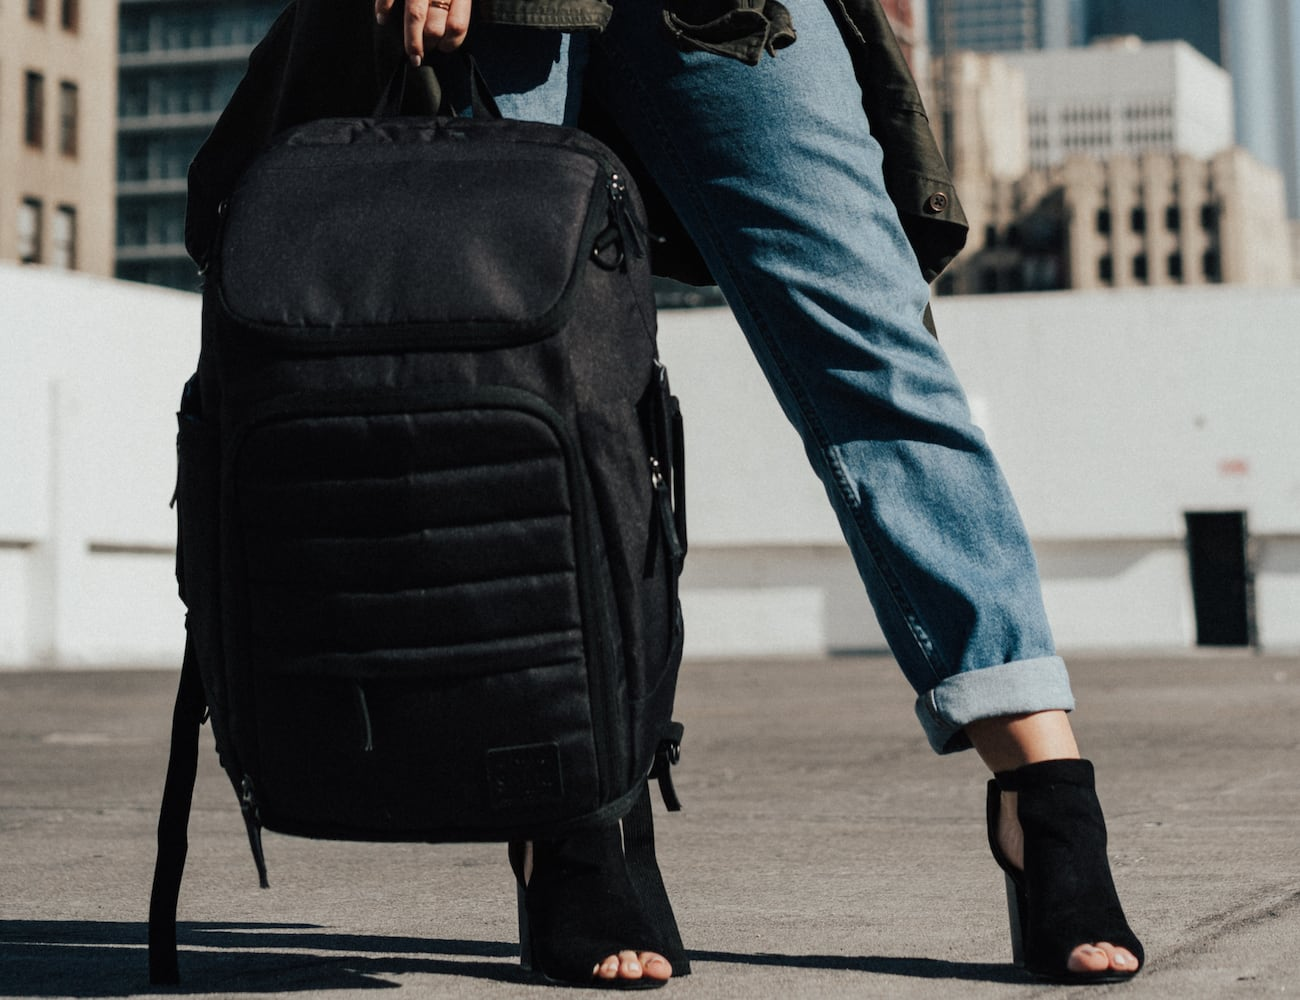 BRIIDGS 2-in-1 Carry-On Bag